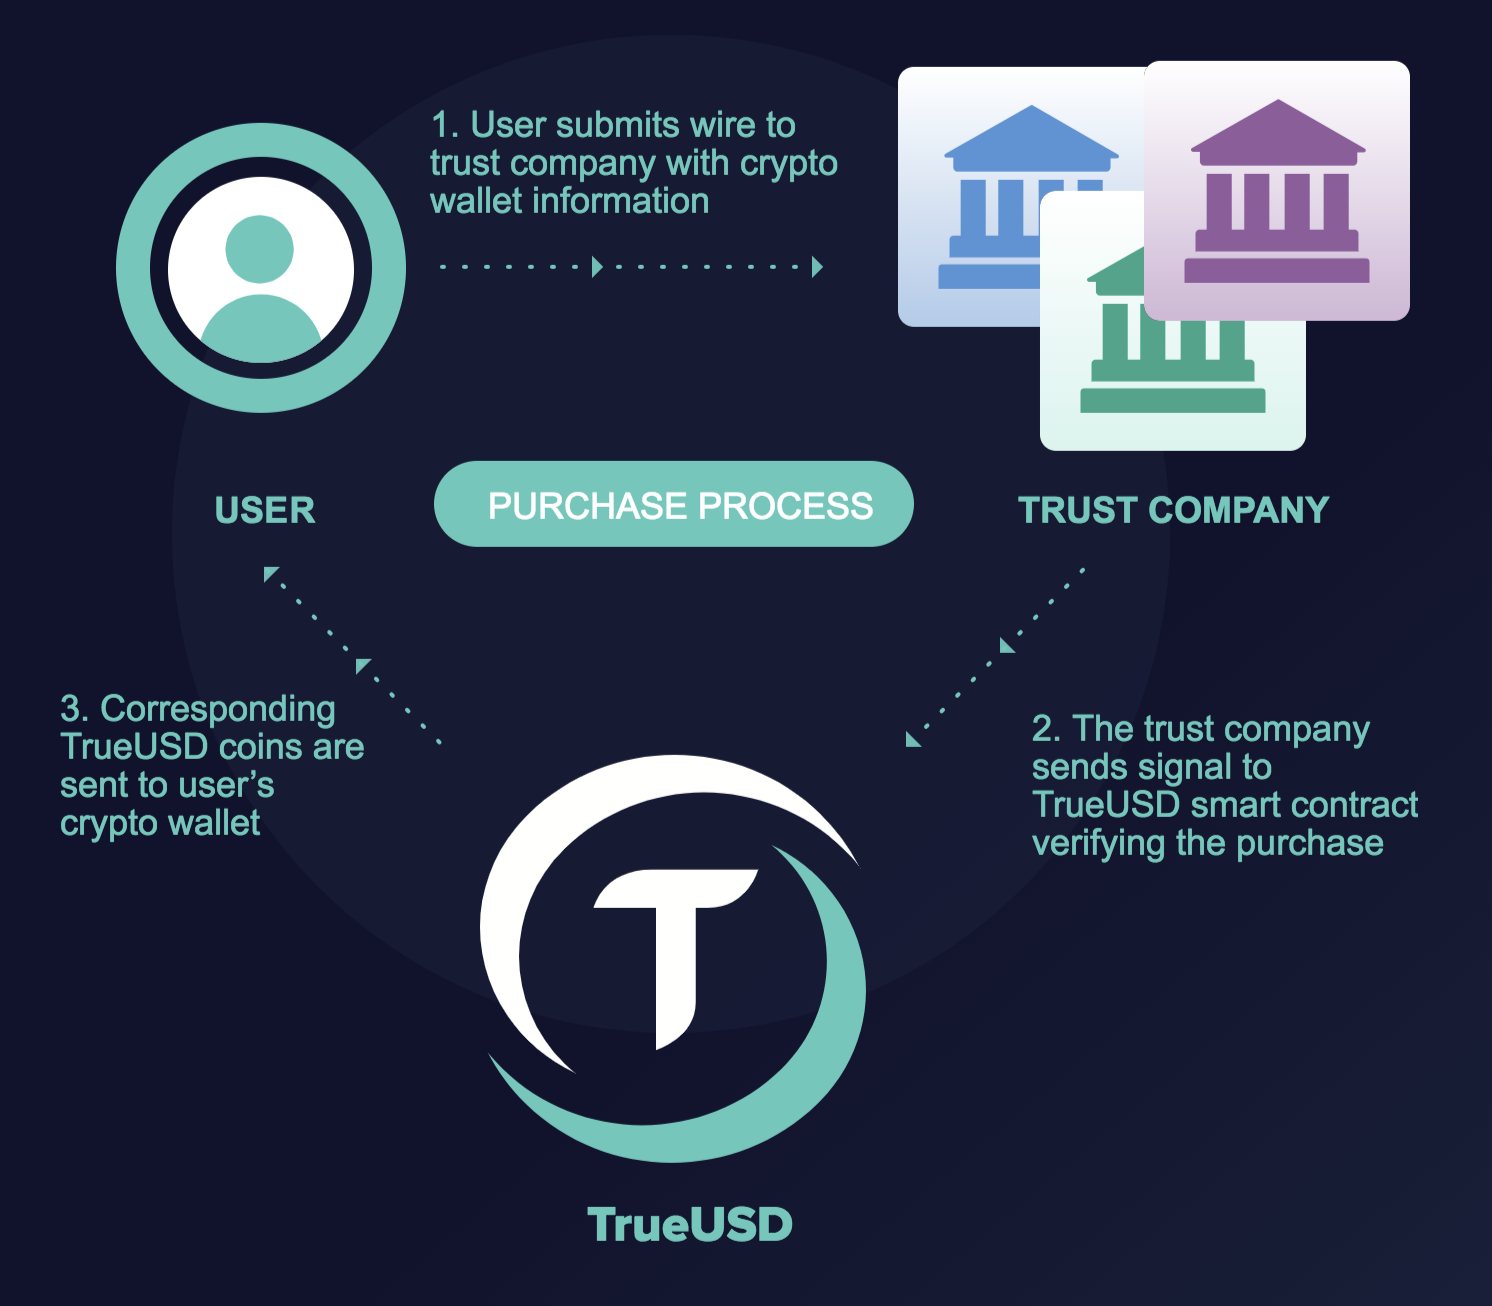 Once Your Funds Have Arrived In The Account Trueusd Smart Contract Will Send You Newly Minted Tokens Corresponding To Number Of Dollars